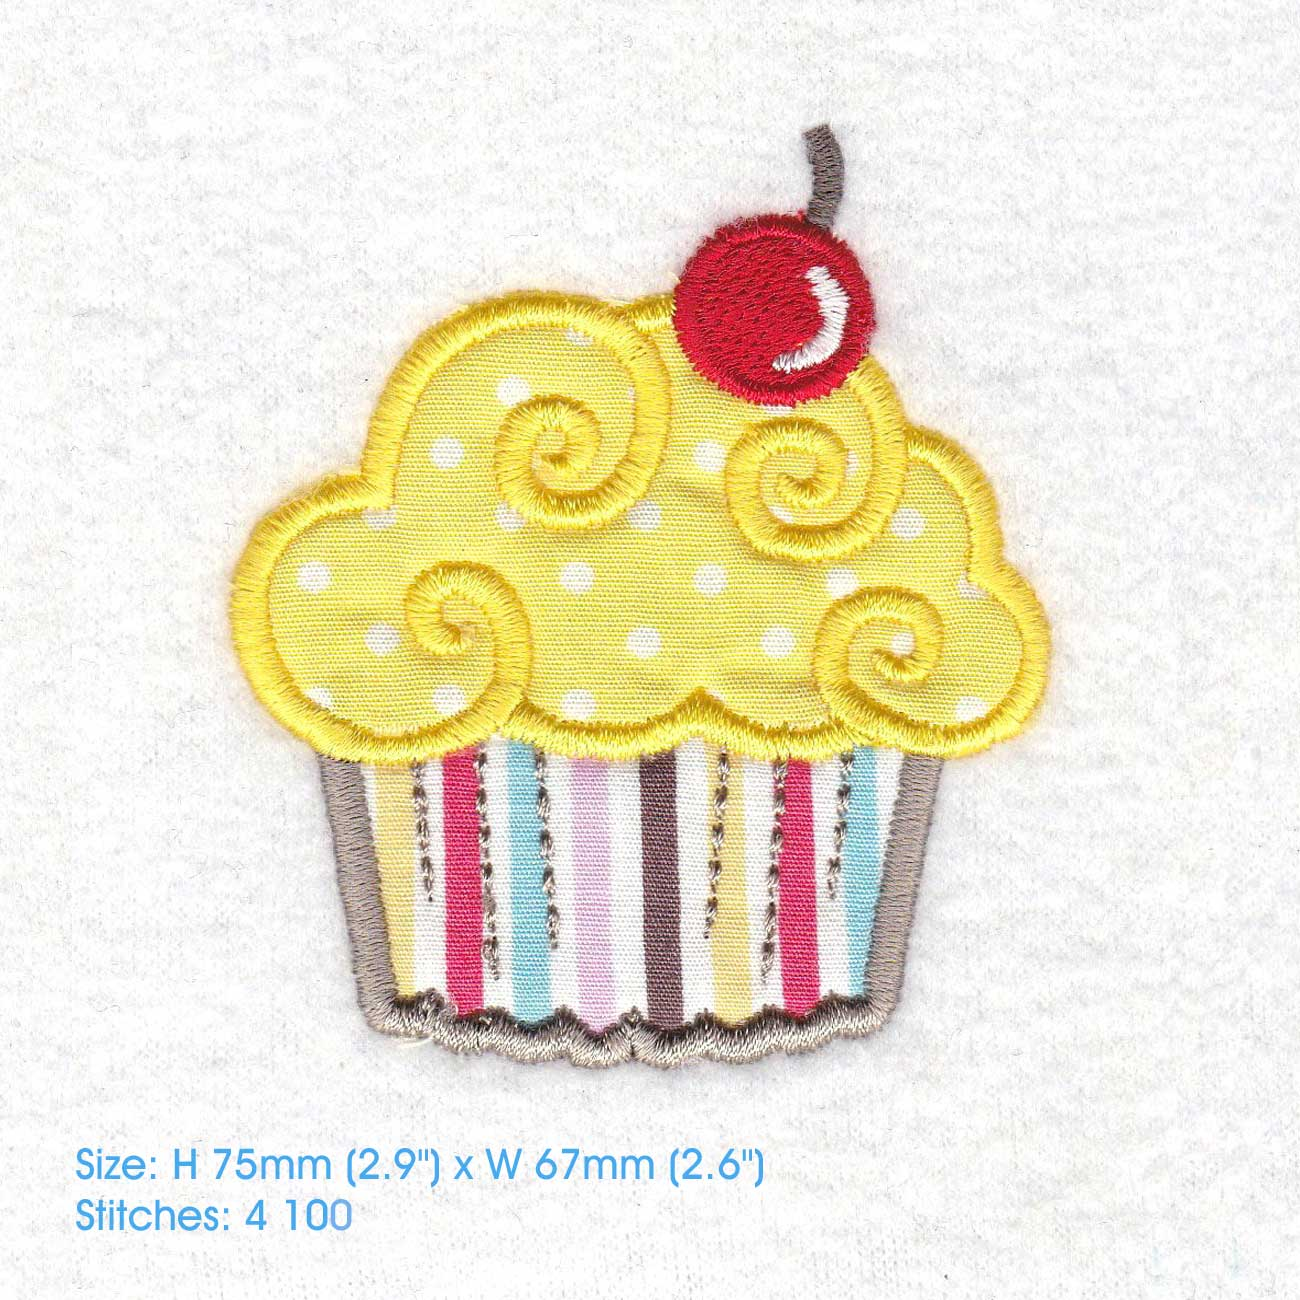 Cherry Cupcake Applique Embroidery Desi Design Bundles